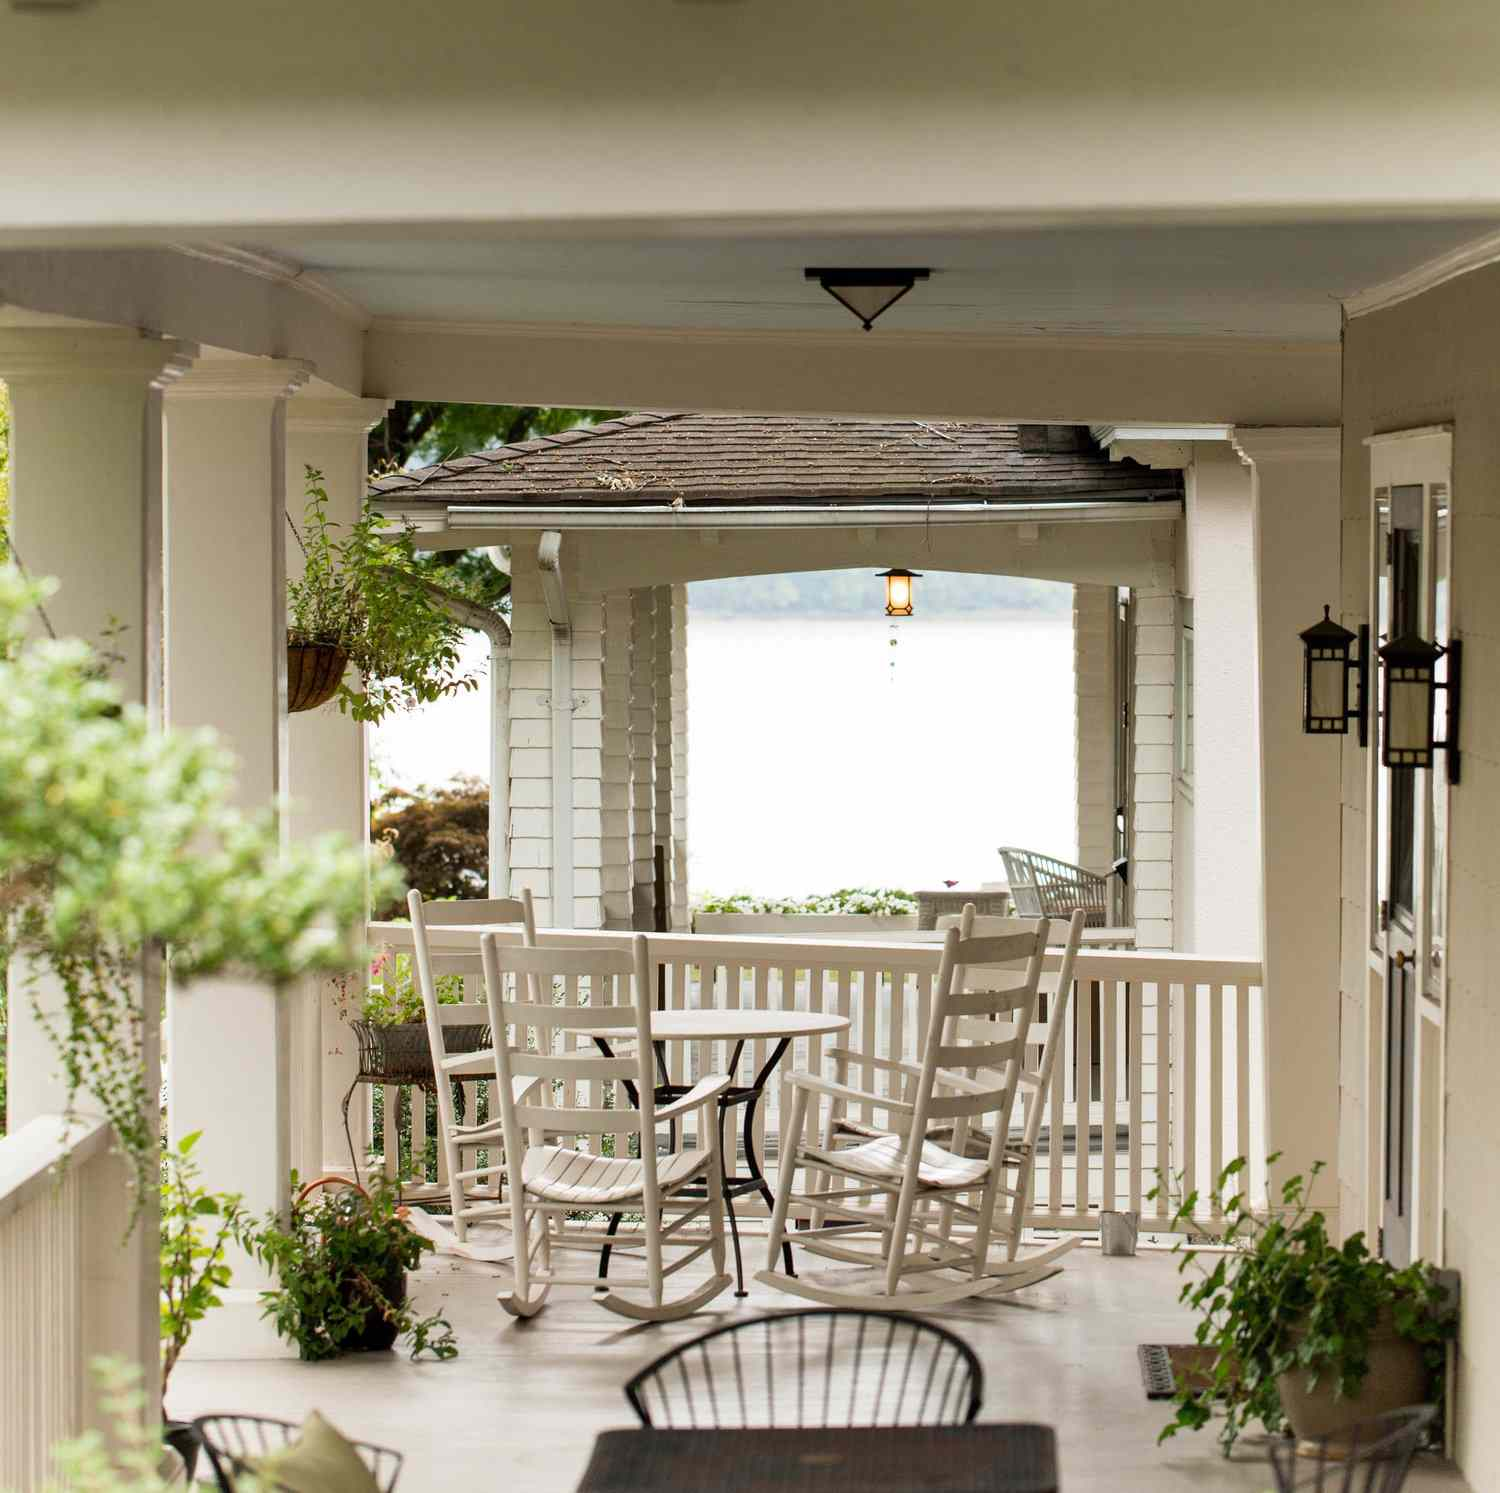 A deck outfitted with a table and several rocking chairs